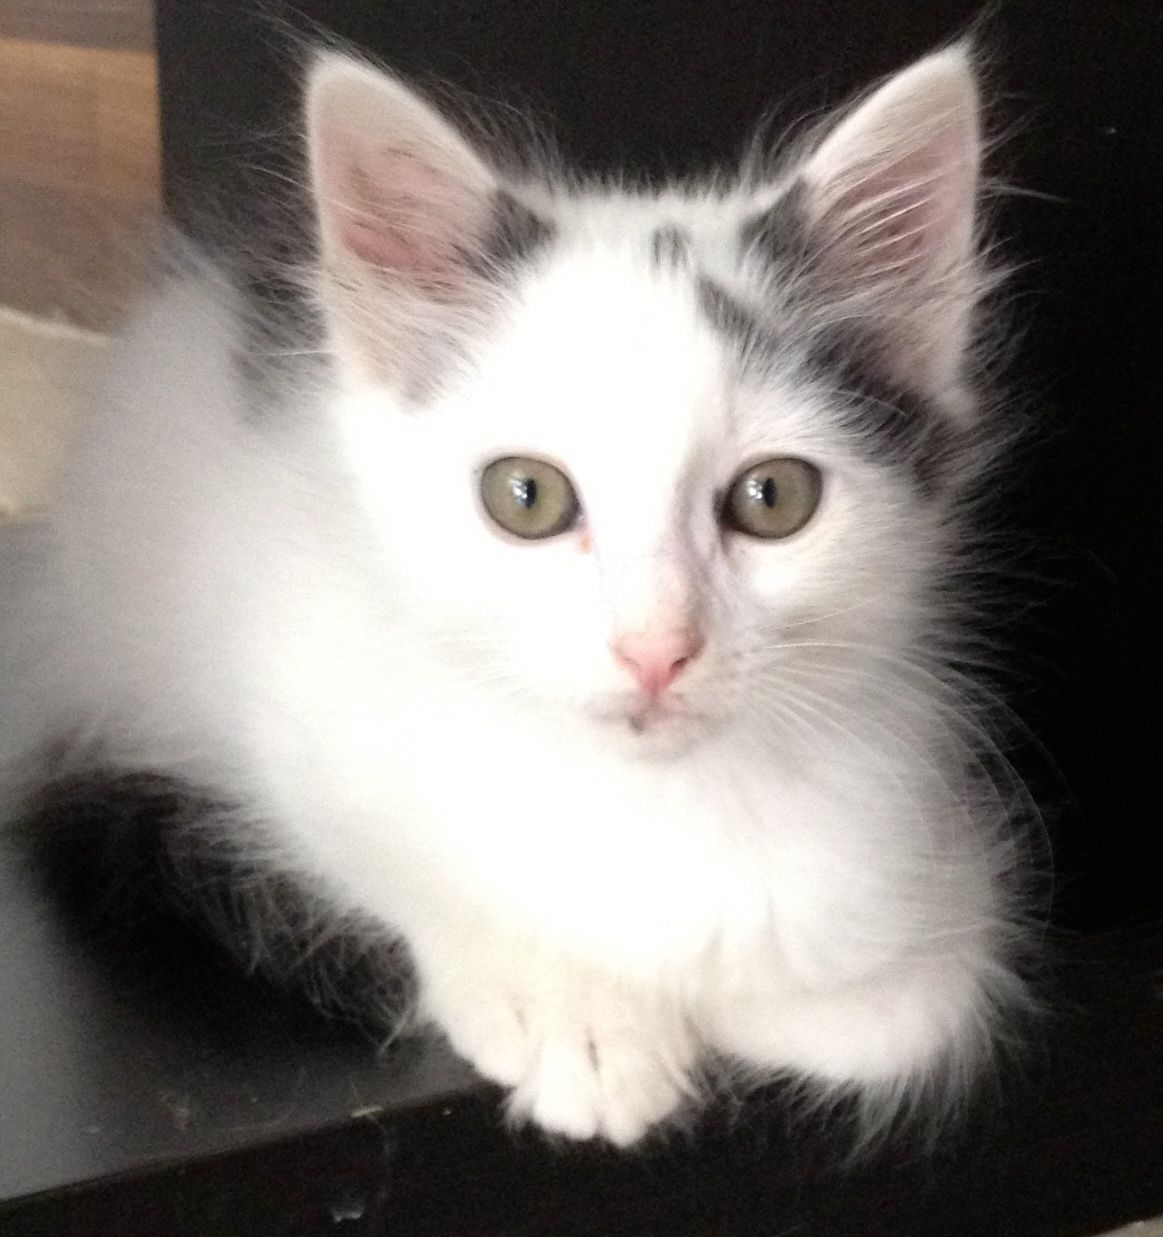 Milton is a sweet & soft 5month old baby kitten who's